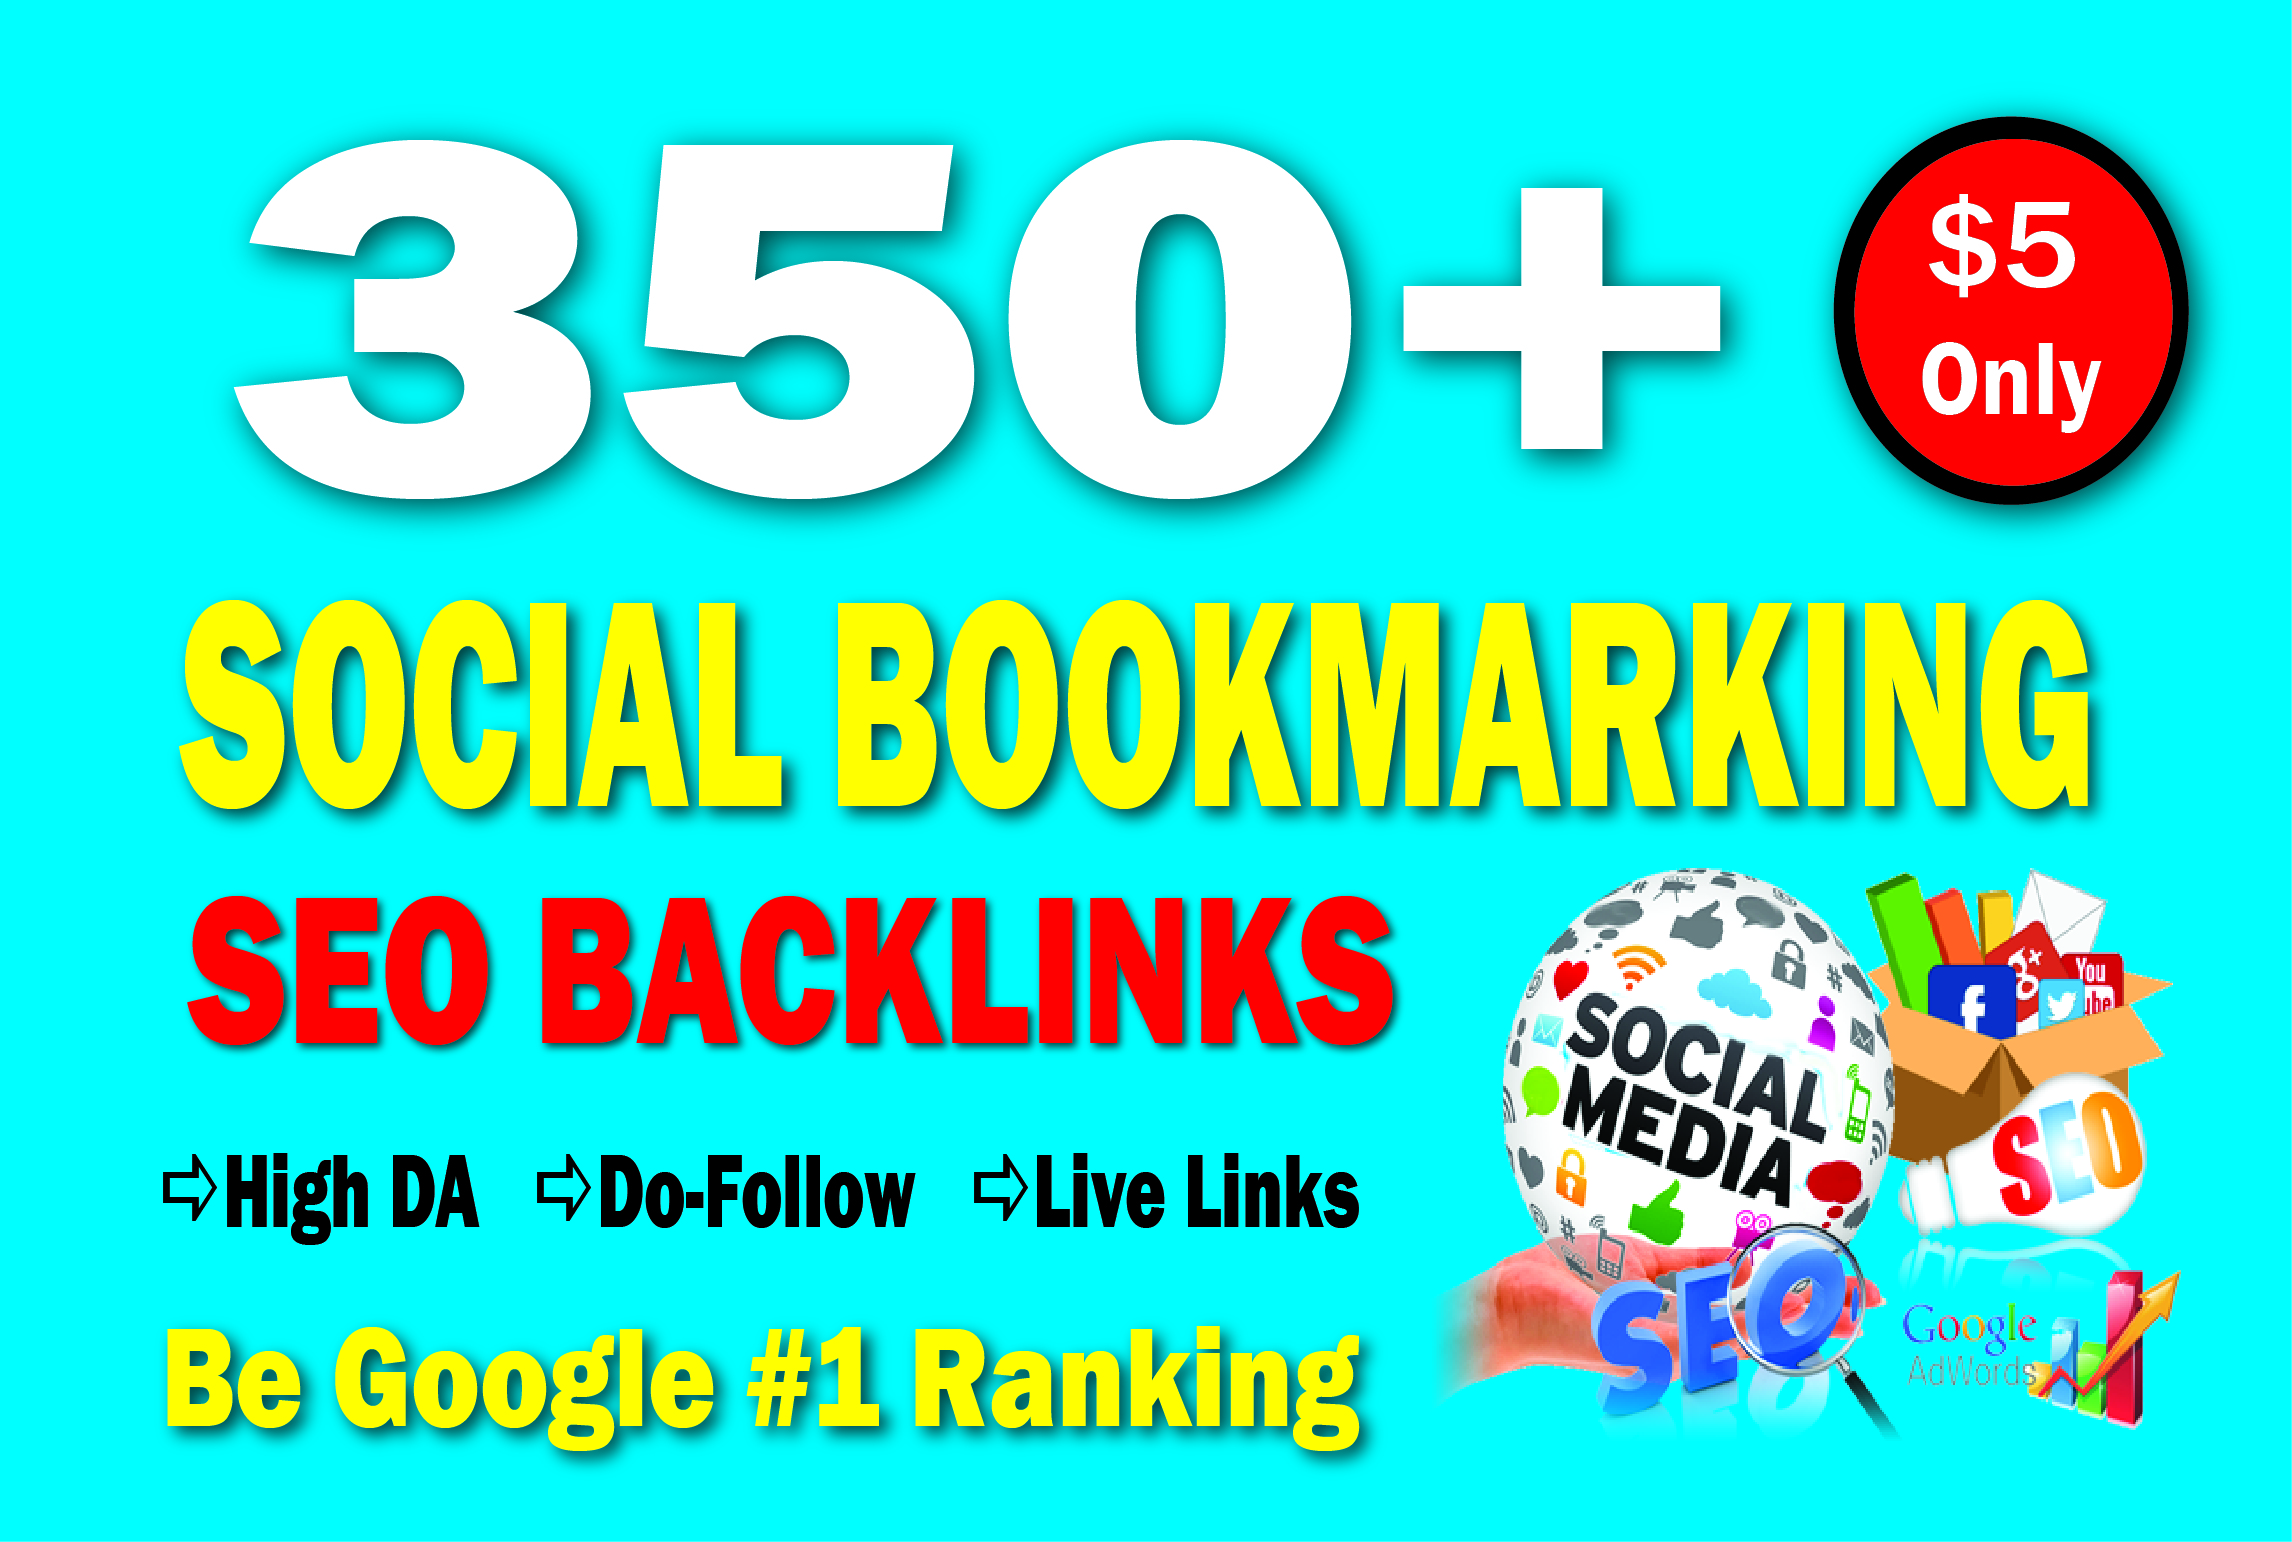 350 High Authority Social Bookmarking SEO Backlinks to Rank Your Website Google 1